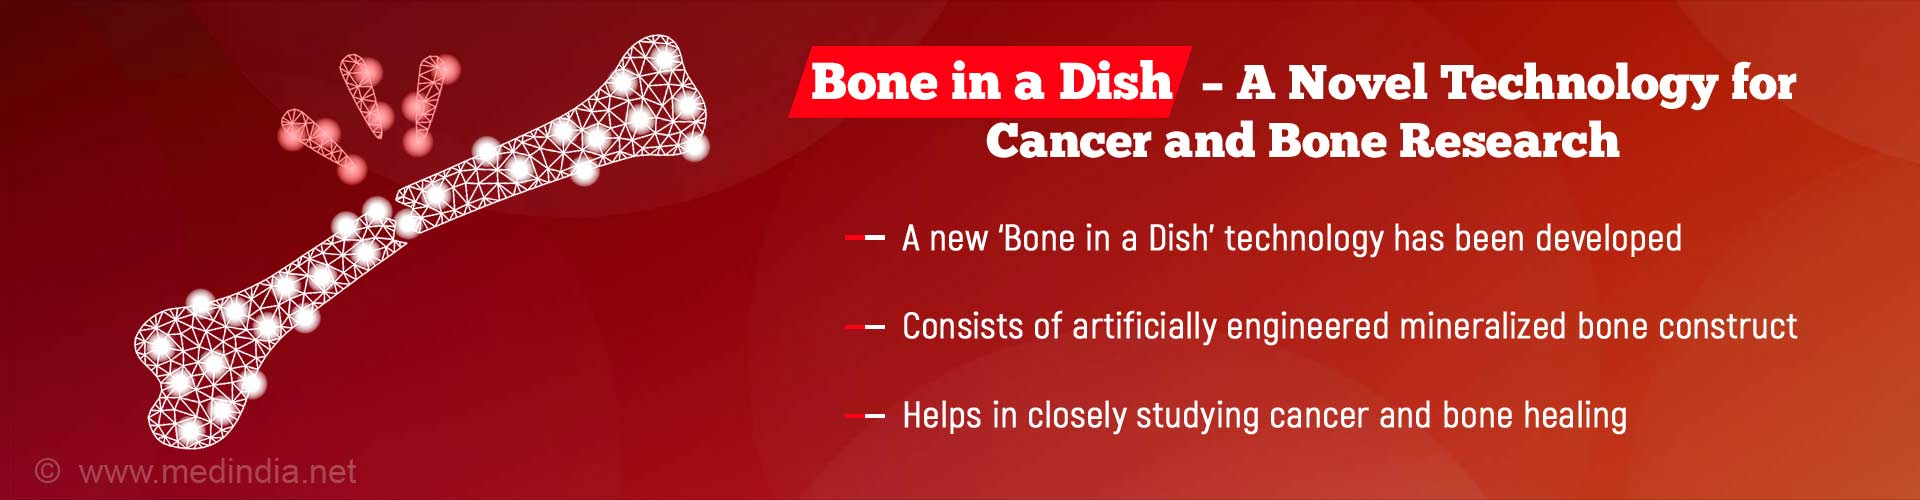 'Bone in a Dish' Opens New Avenues for Studying Cancer and Bone Healing